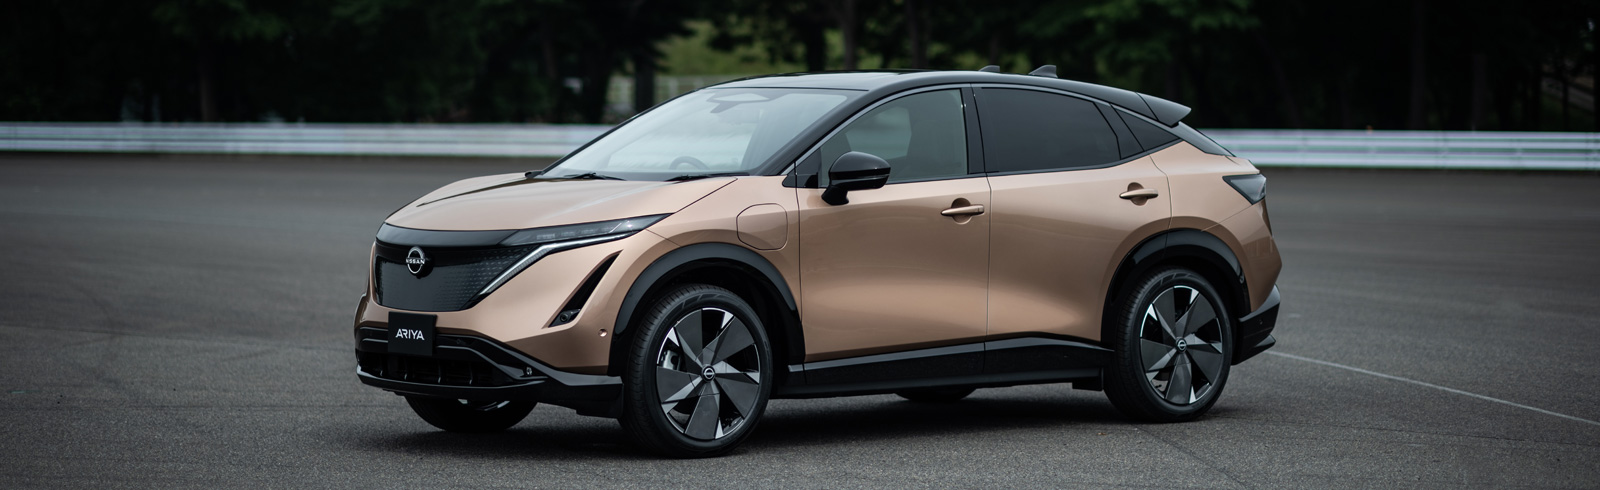 2021 Nissan Ariya debuts with up to 500 km of range together with Nissan's new logo